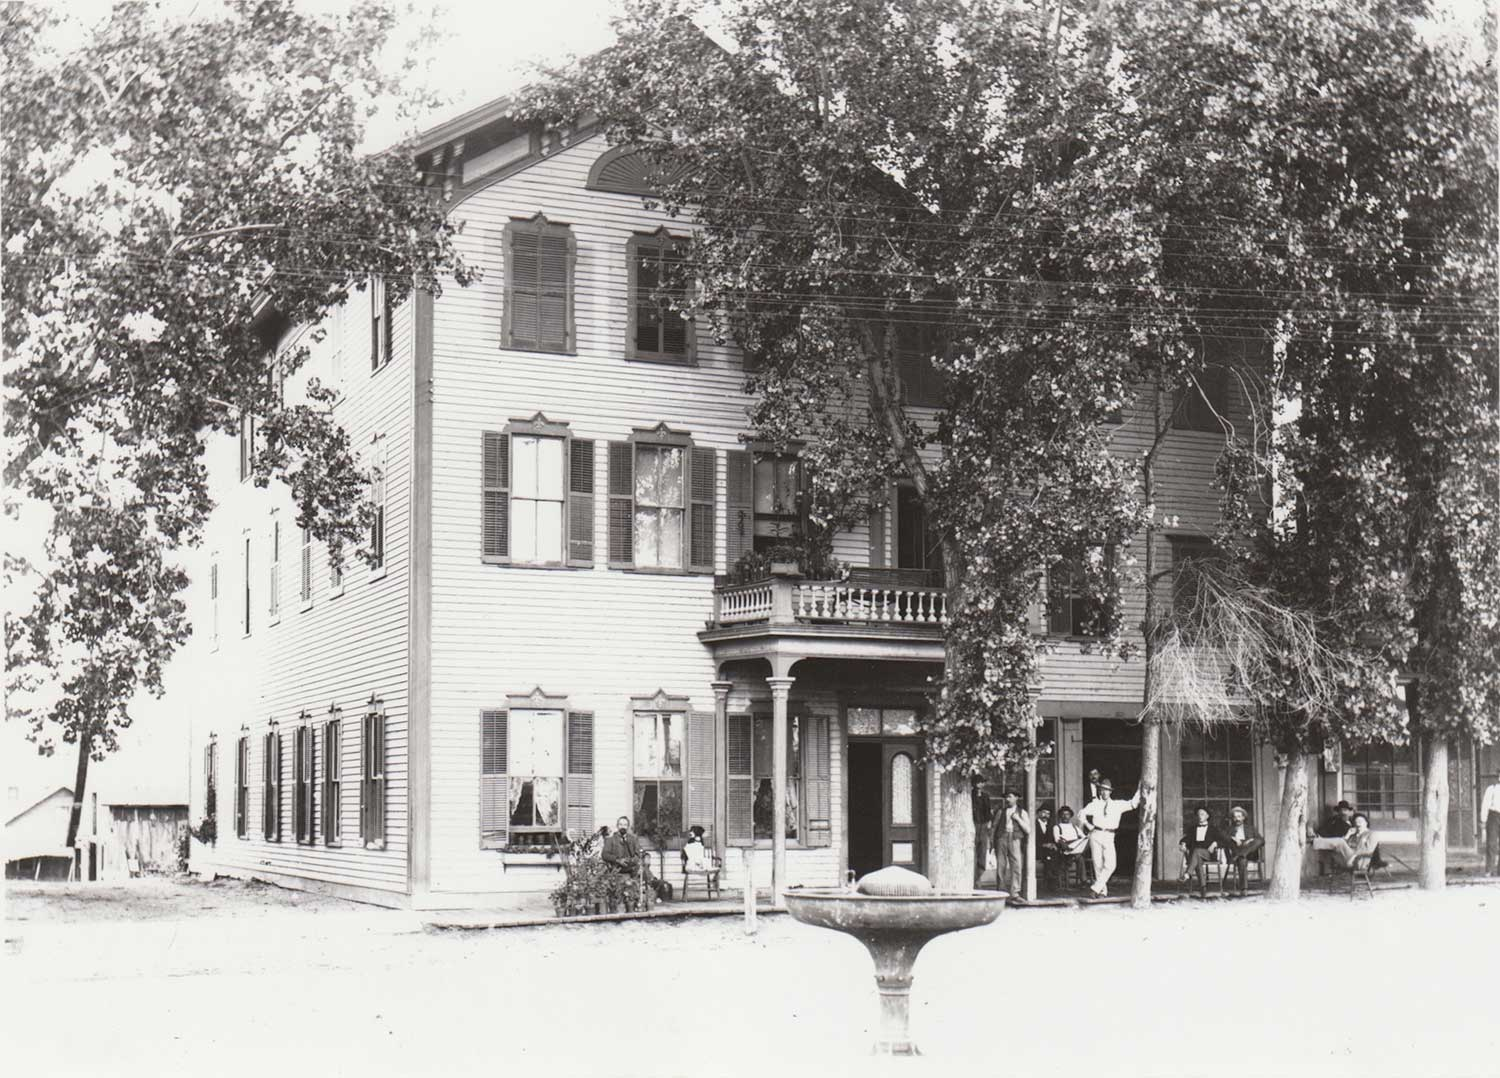 1. Great Northern Hotel